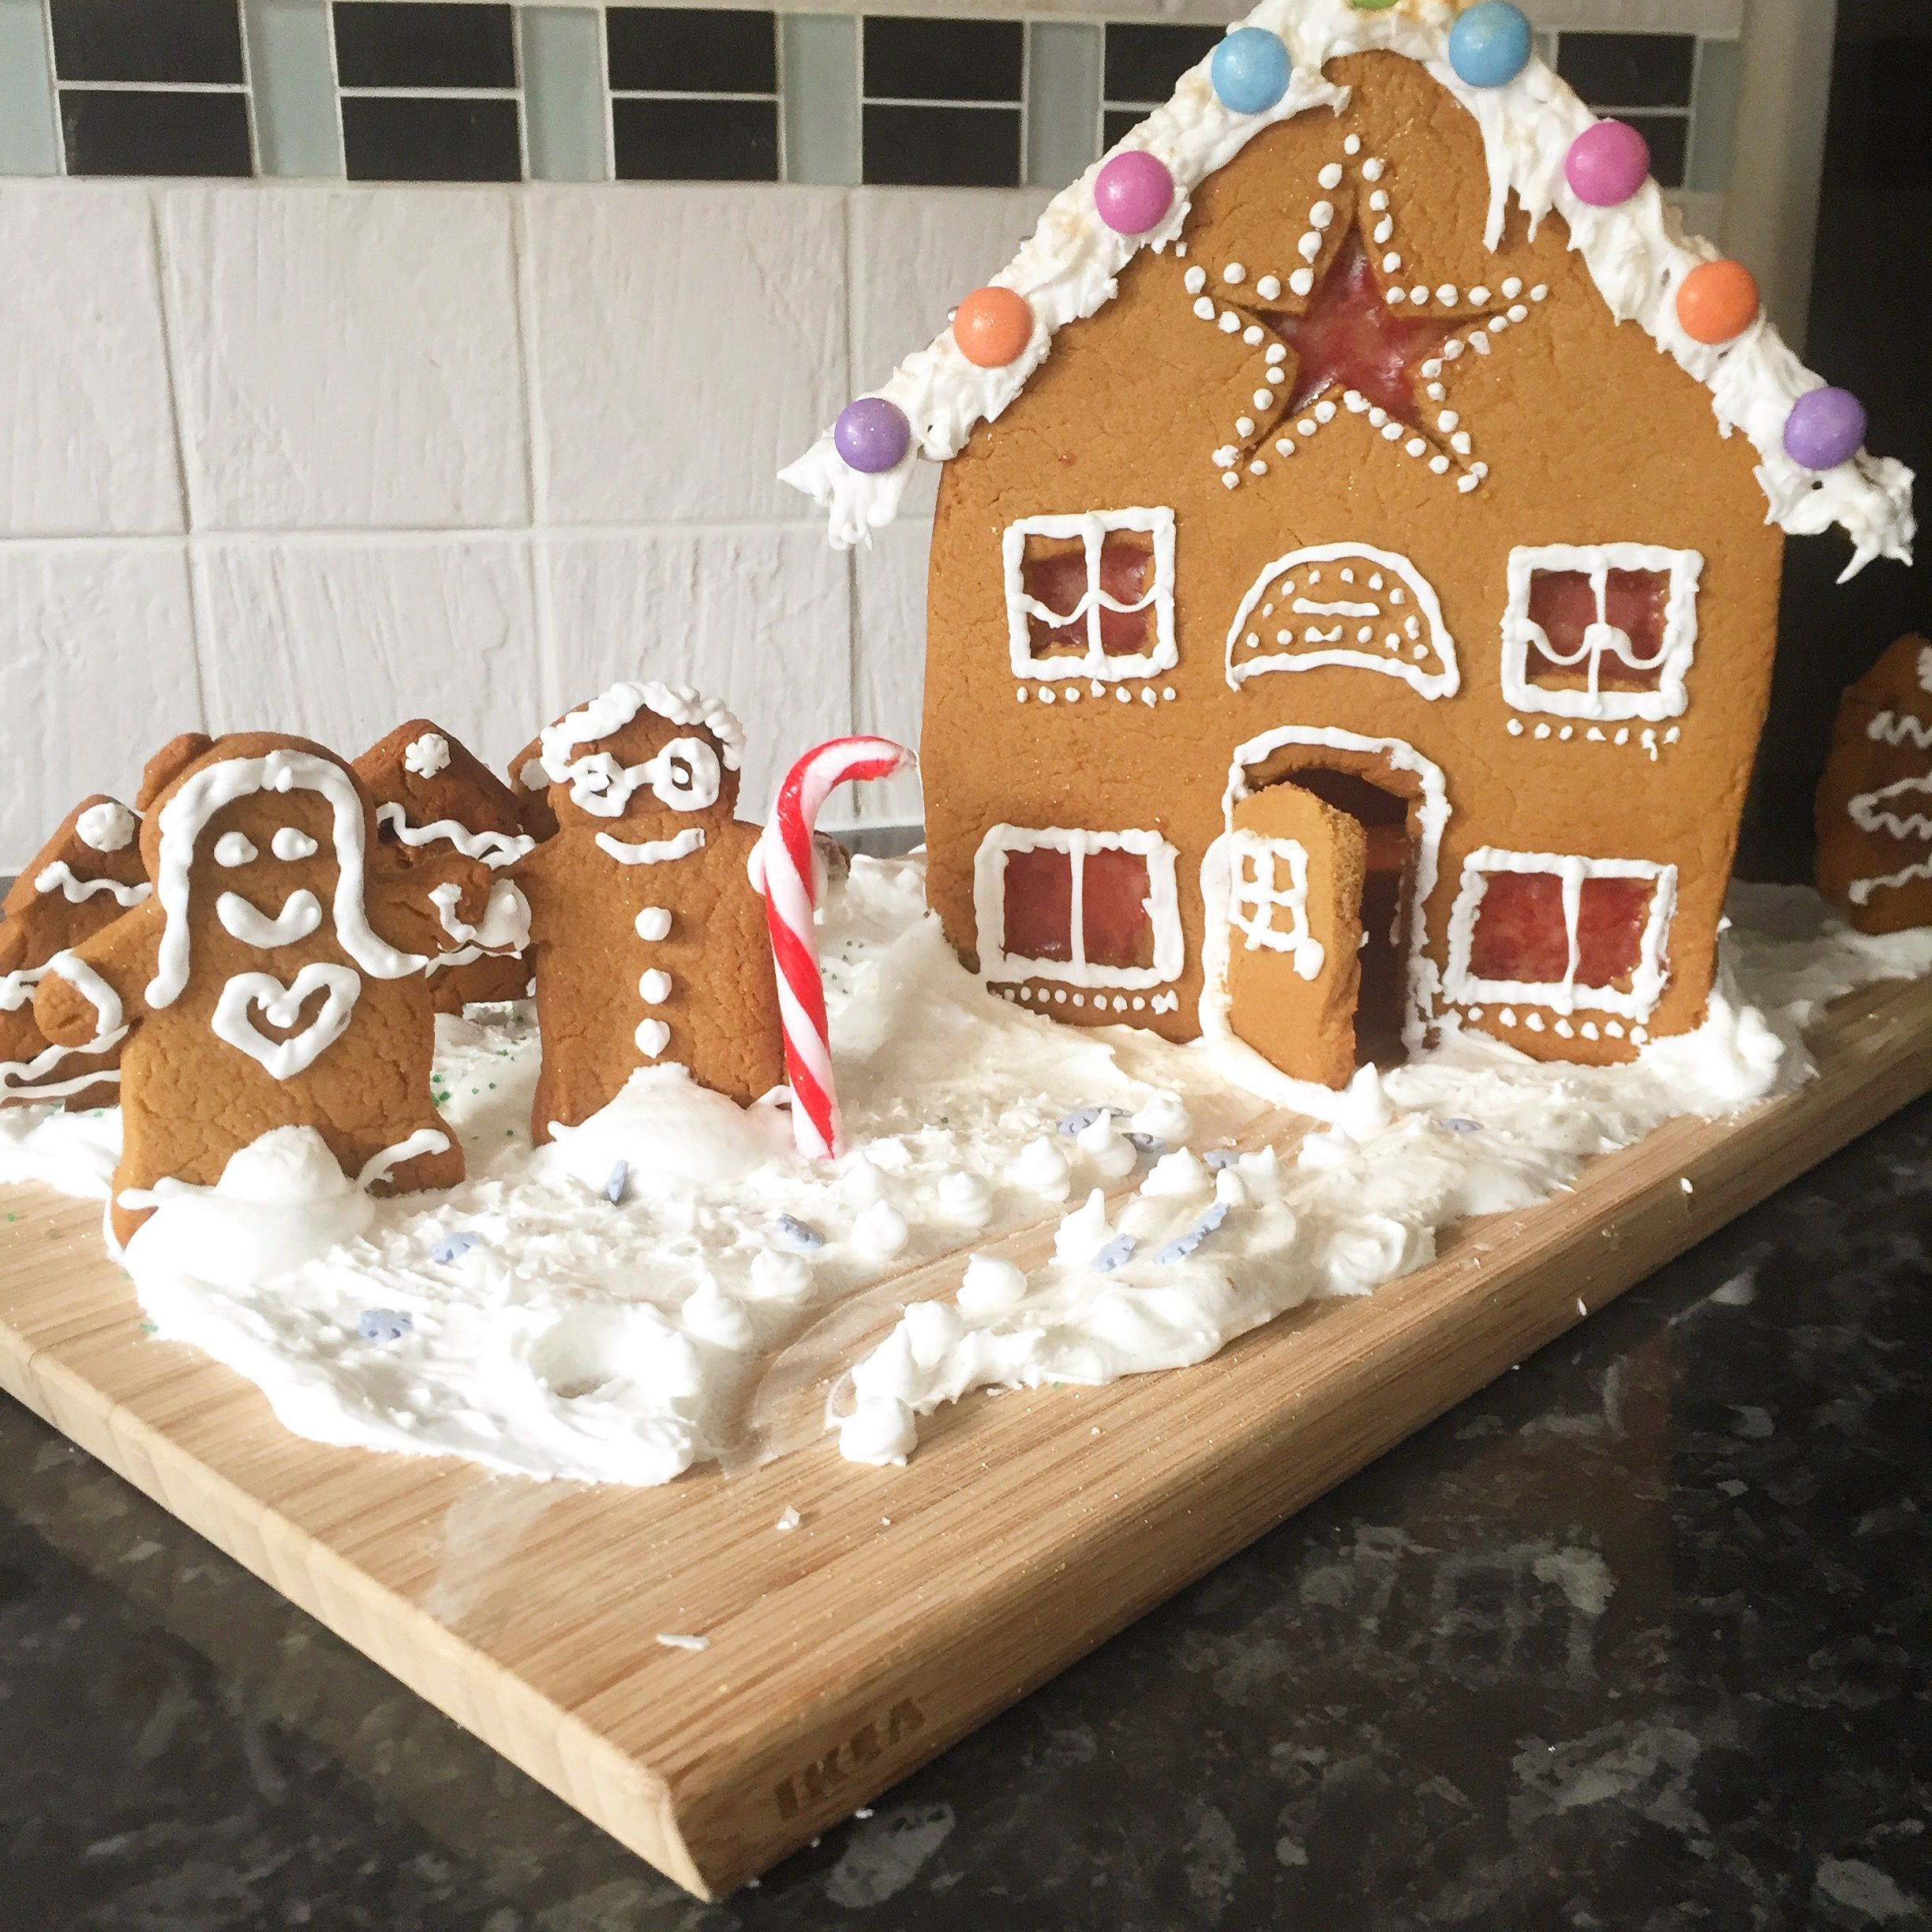 Diy gingerbread house my cakes pinterest gingerbread houses diy gingerbread house solutioingenieria Image collections